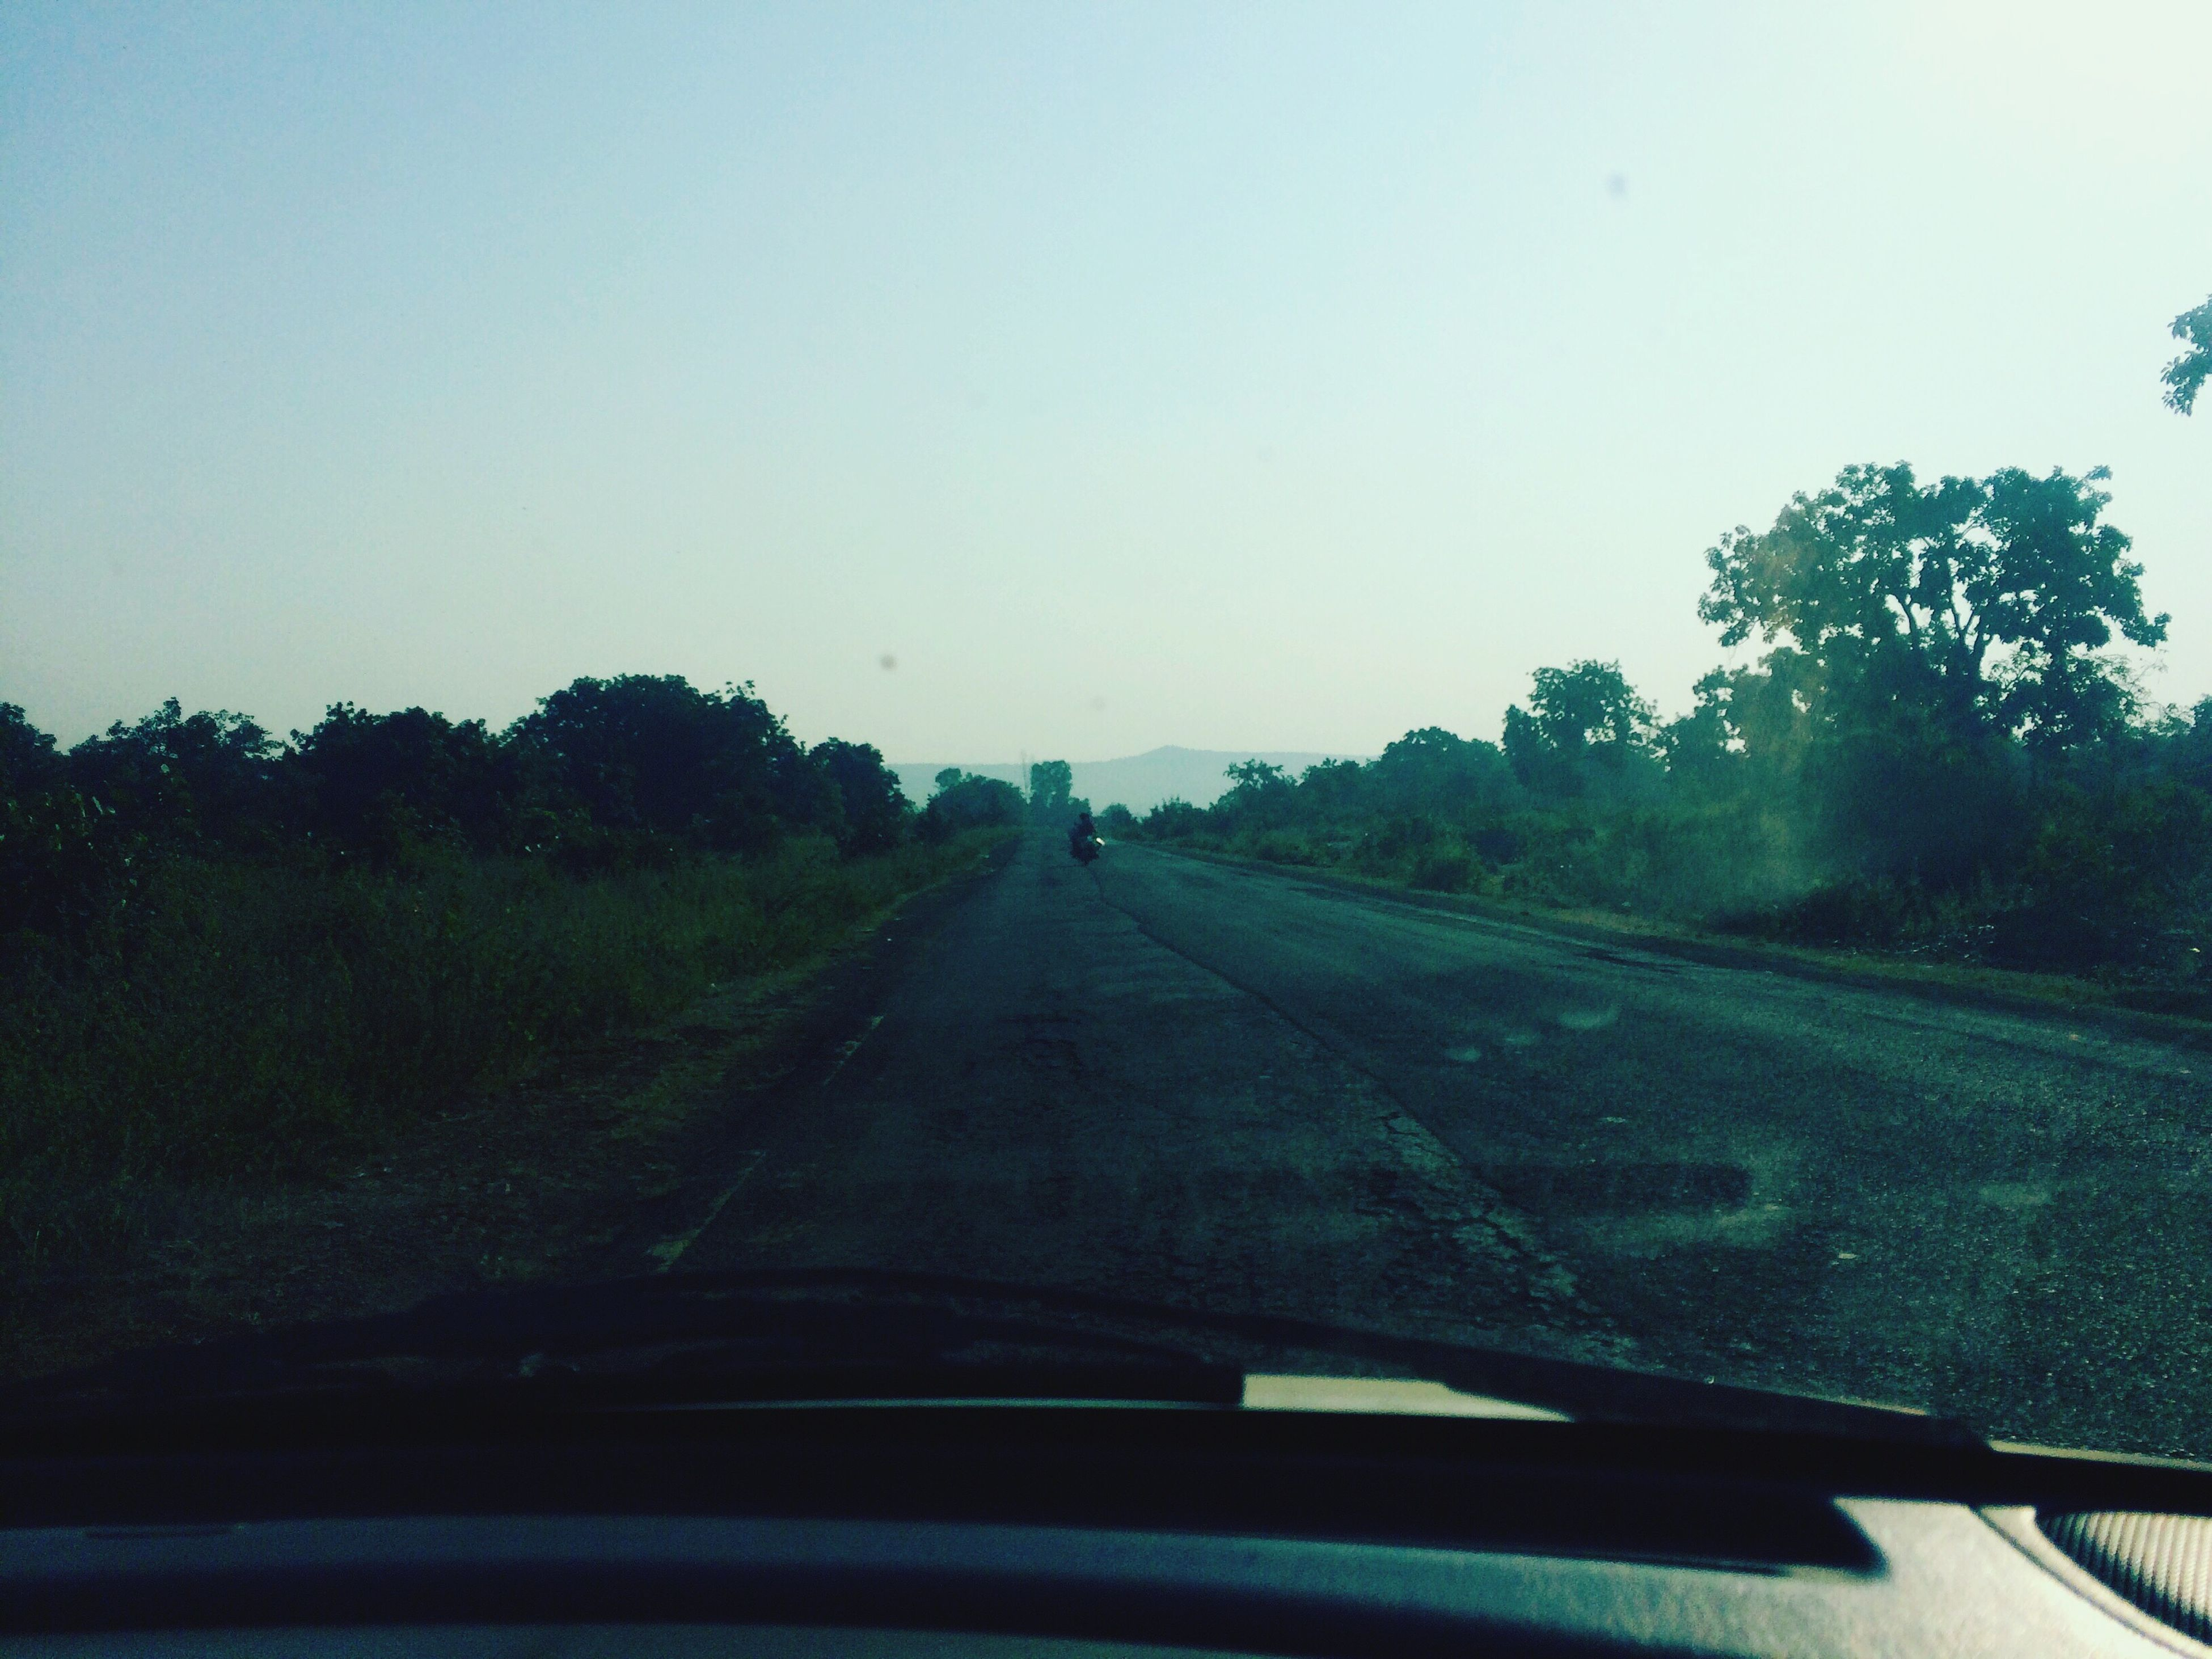 transportation, tree, land vehicle, mode of transport, car, car interior, windshield, road, vehicle interior, clear sky, diminishing perspective, the way forward, tranquil scene, car point of view, landscape, country road, tranquility, nature, non-urban scene, scenics, blue, outdoors, day, vanishing point, countryside, long, growth, beauty in nature